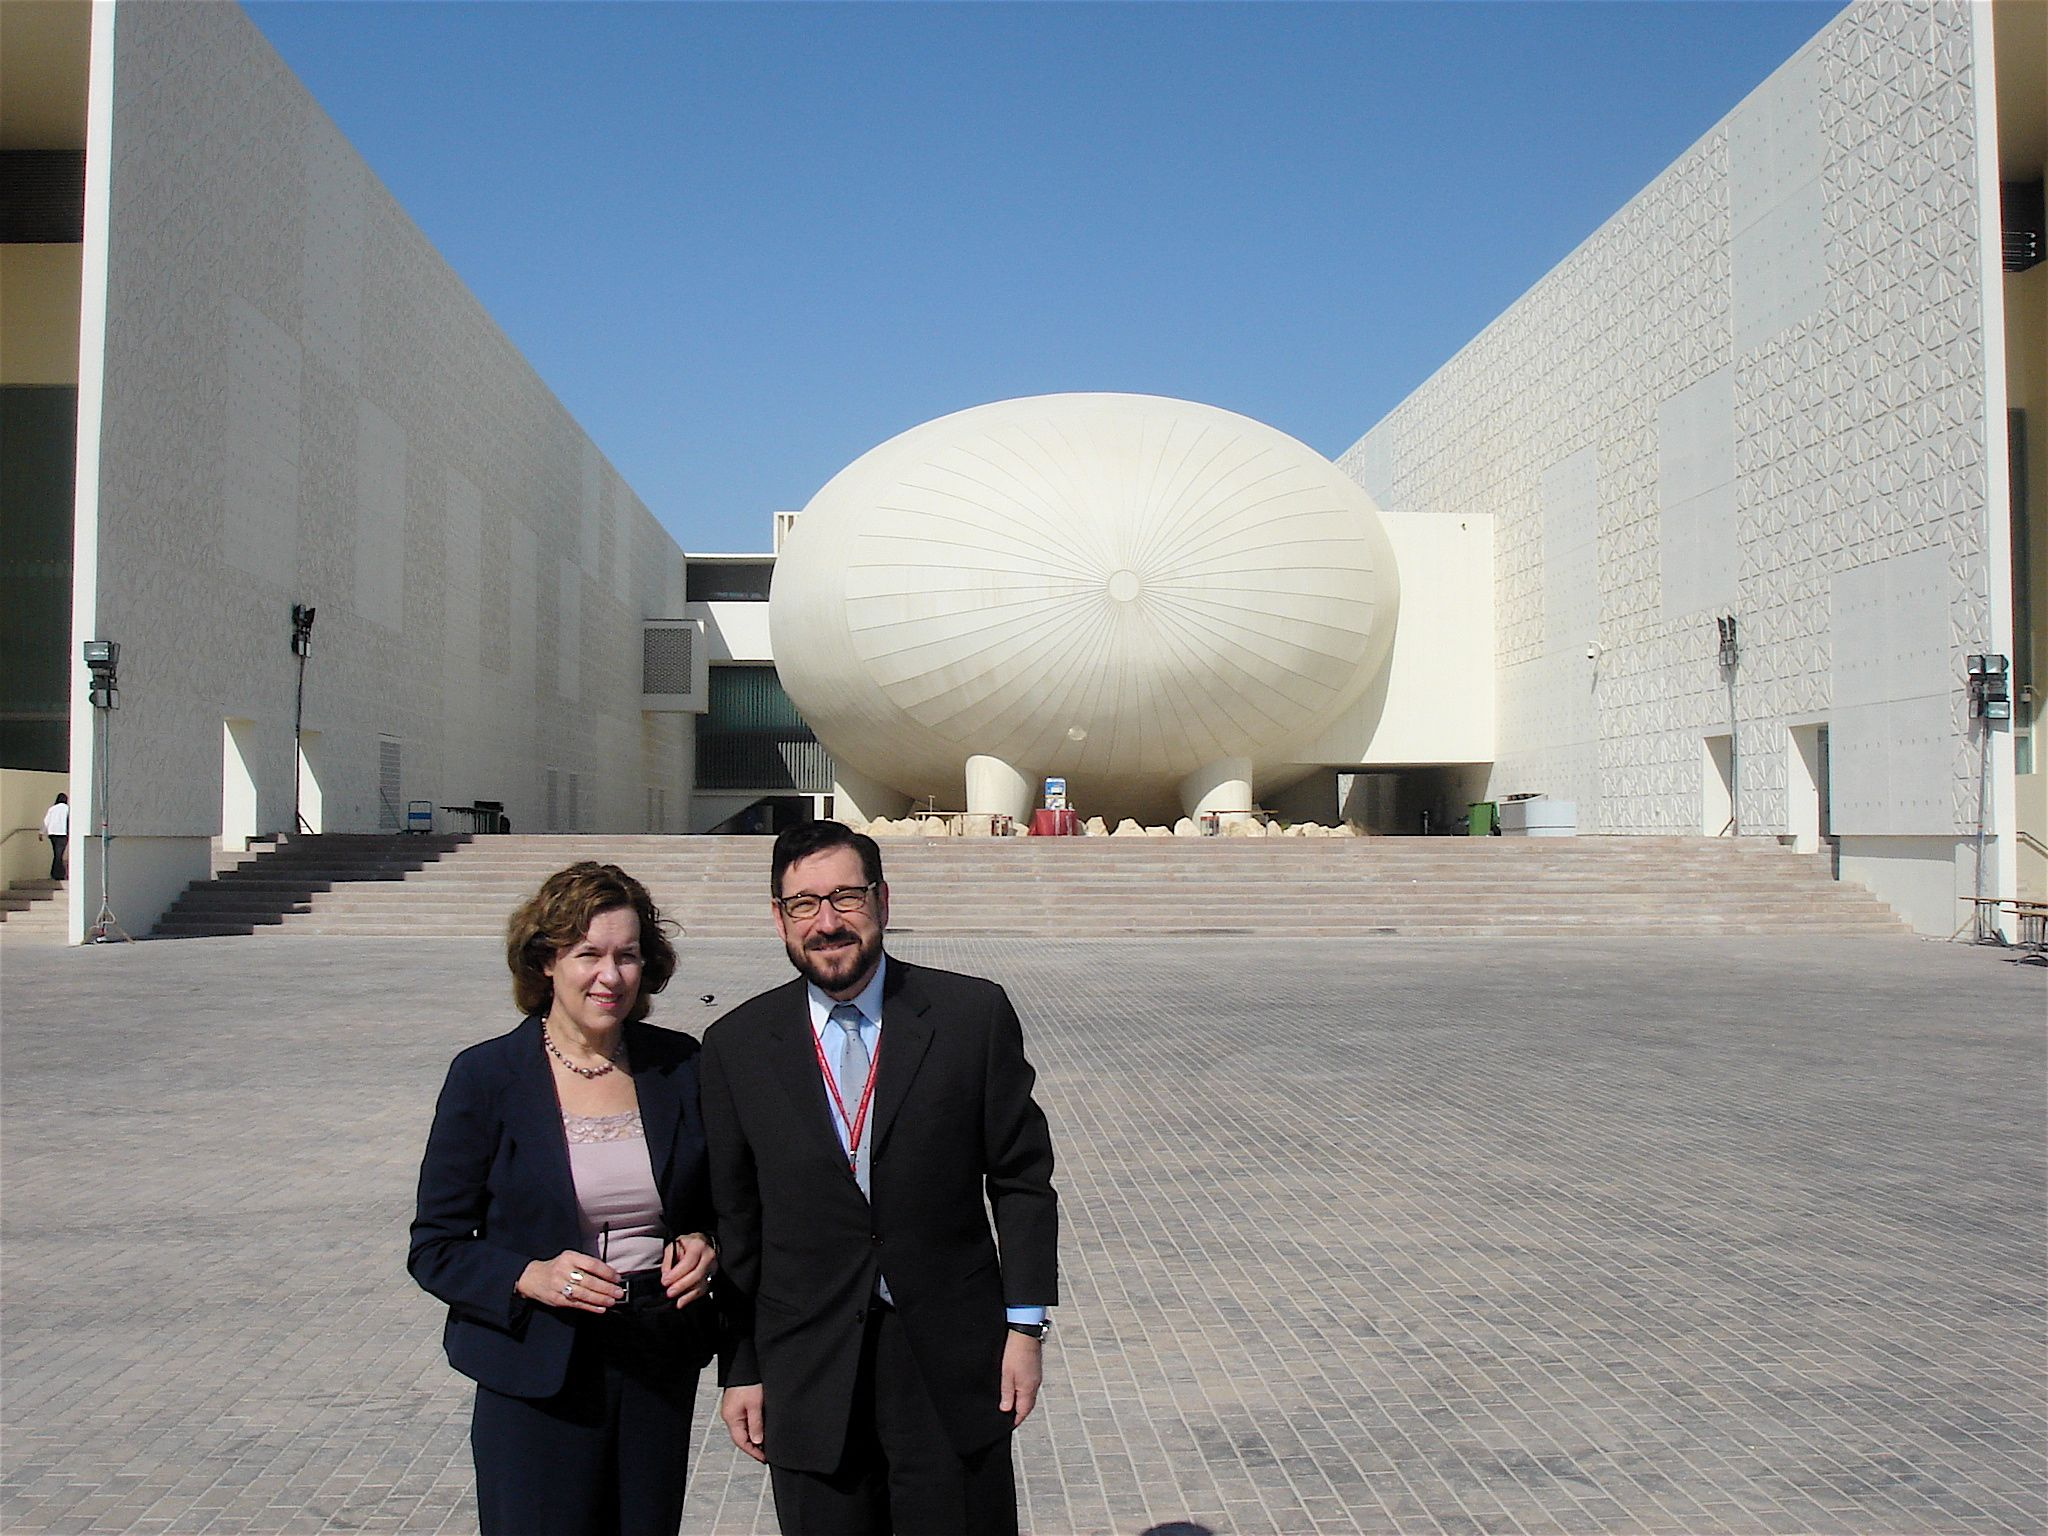 Dr. Gudas standing with colleague from Qatar.